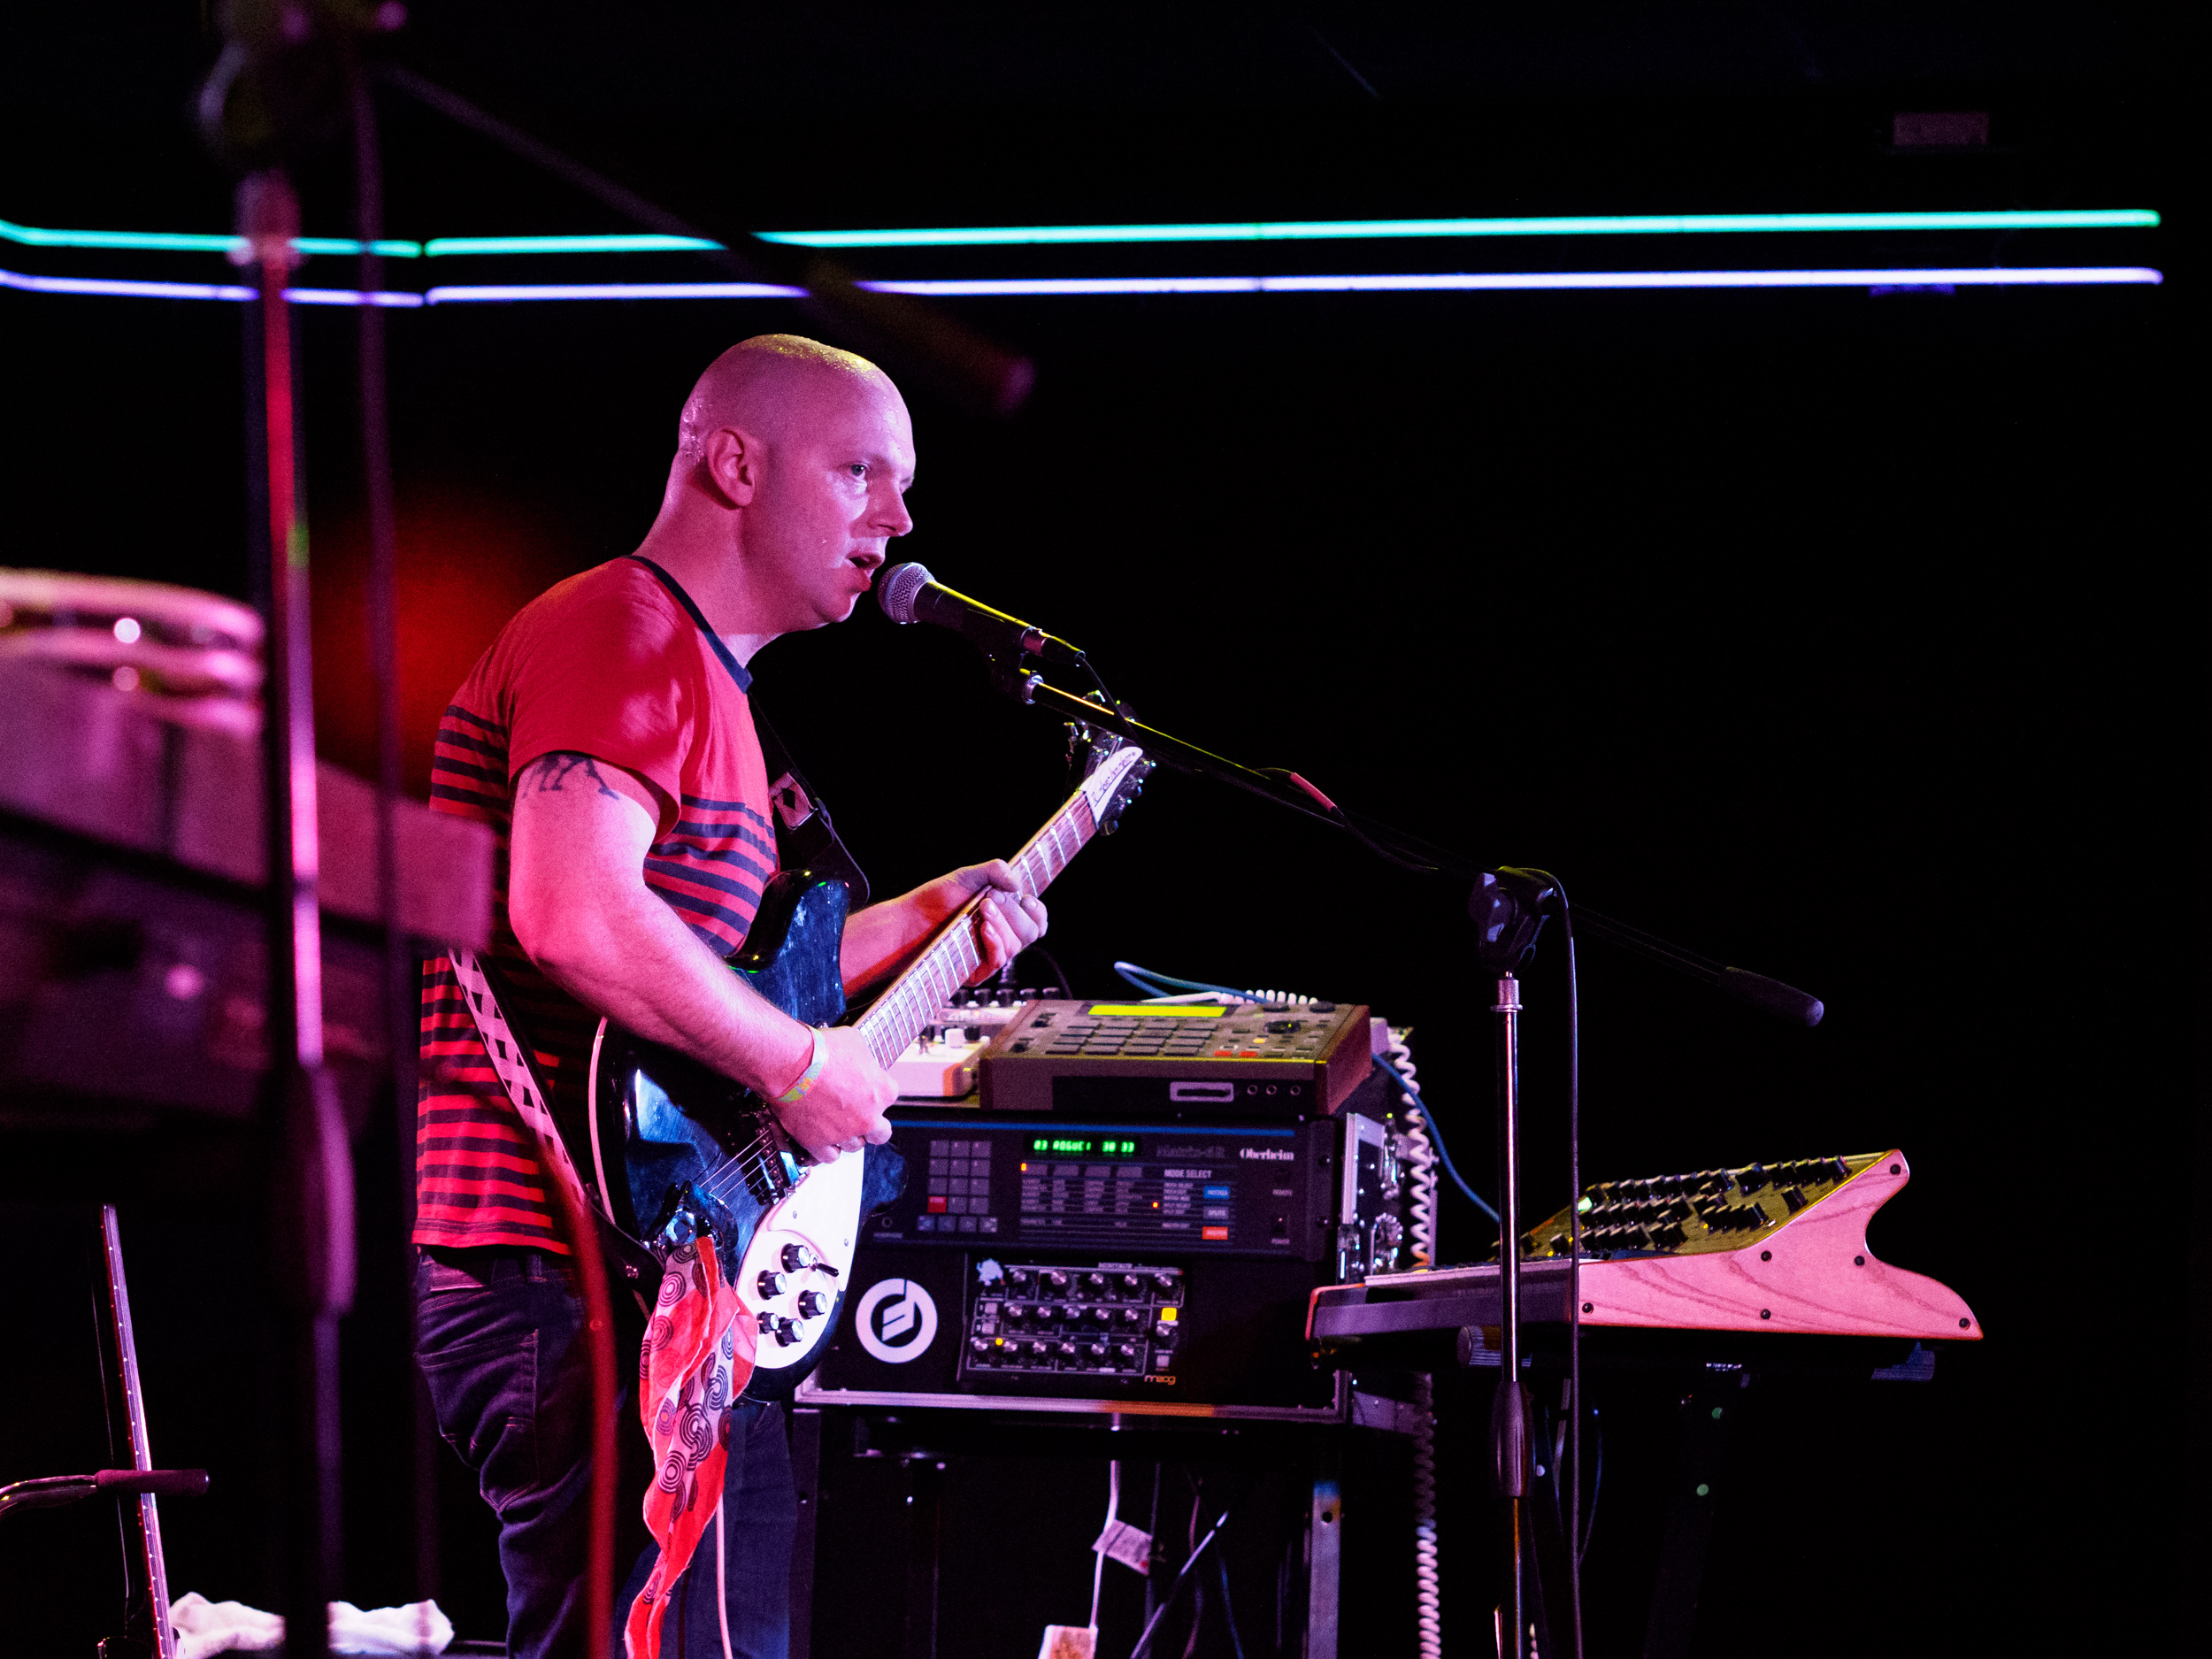 17-06-10_Concert_at_the_Foundry_6100259.JPG